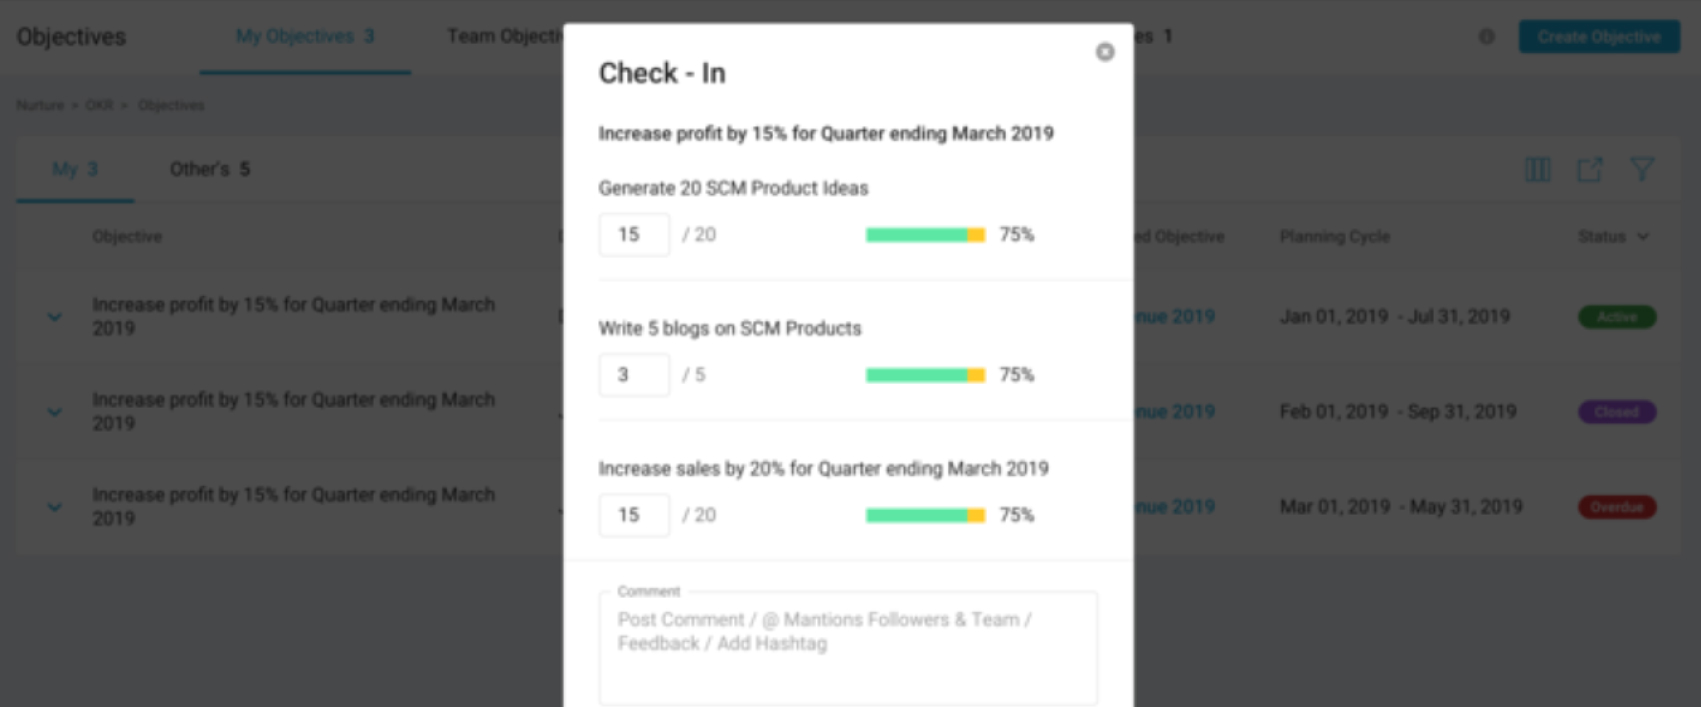 OKR management system-Seamless Check - Ins